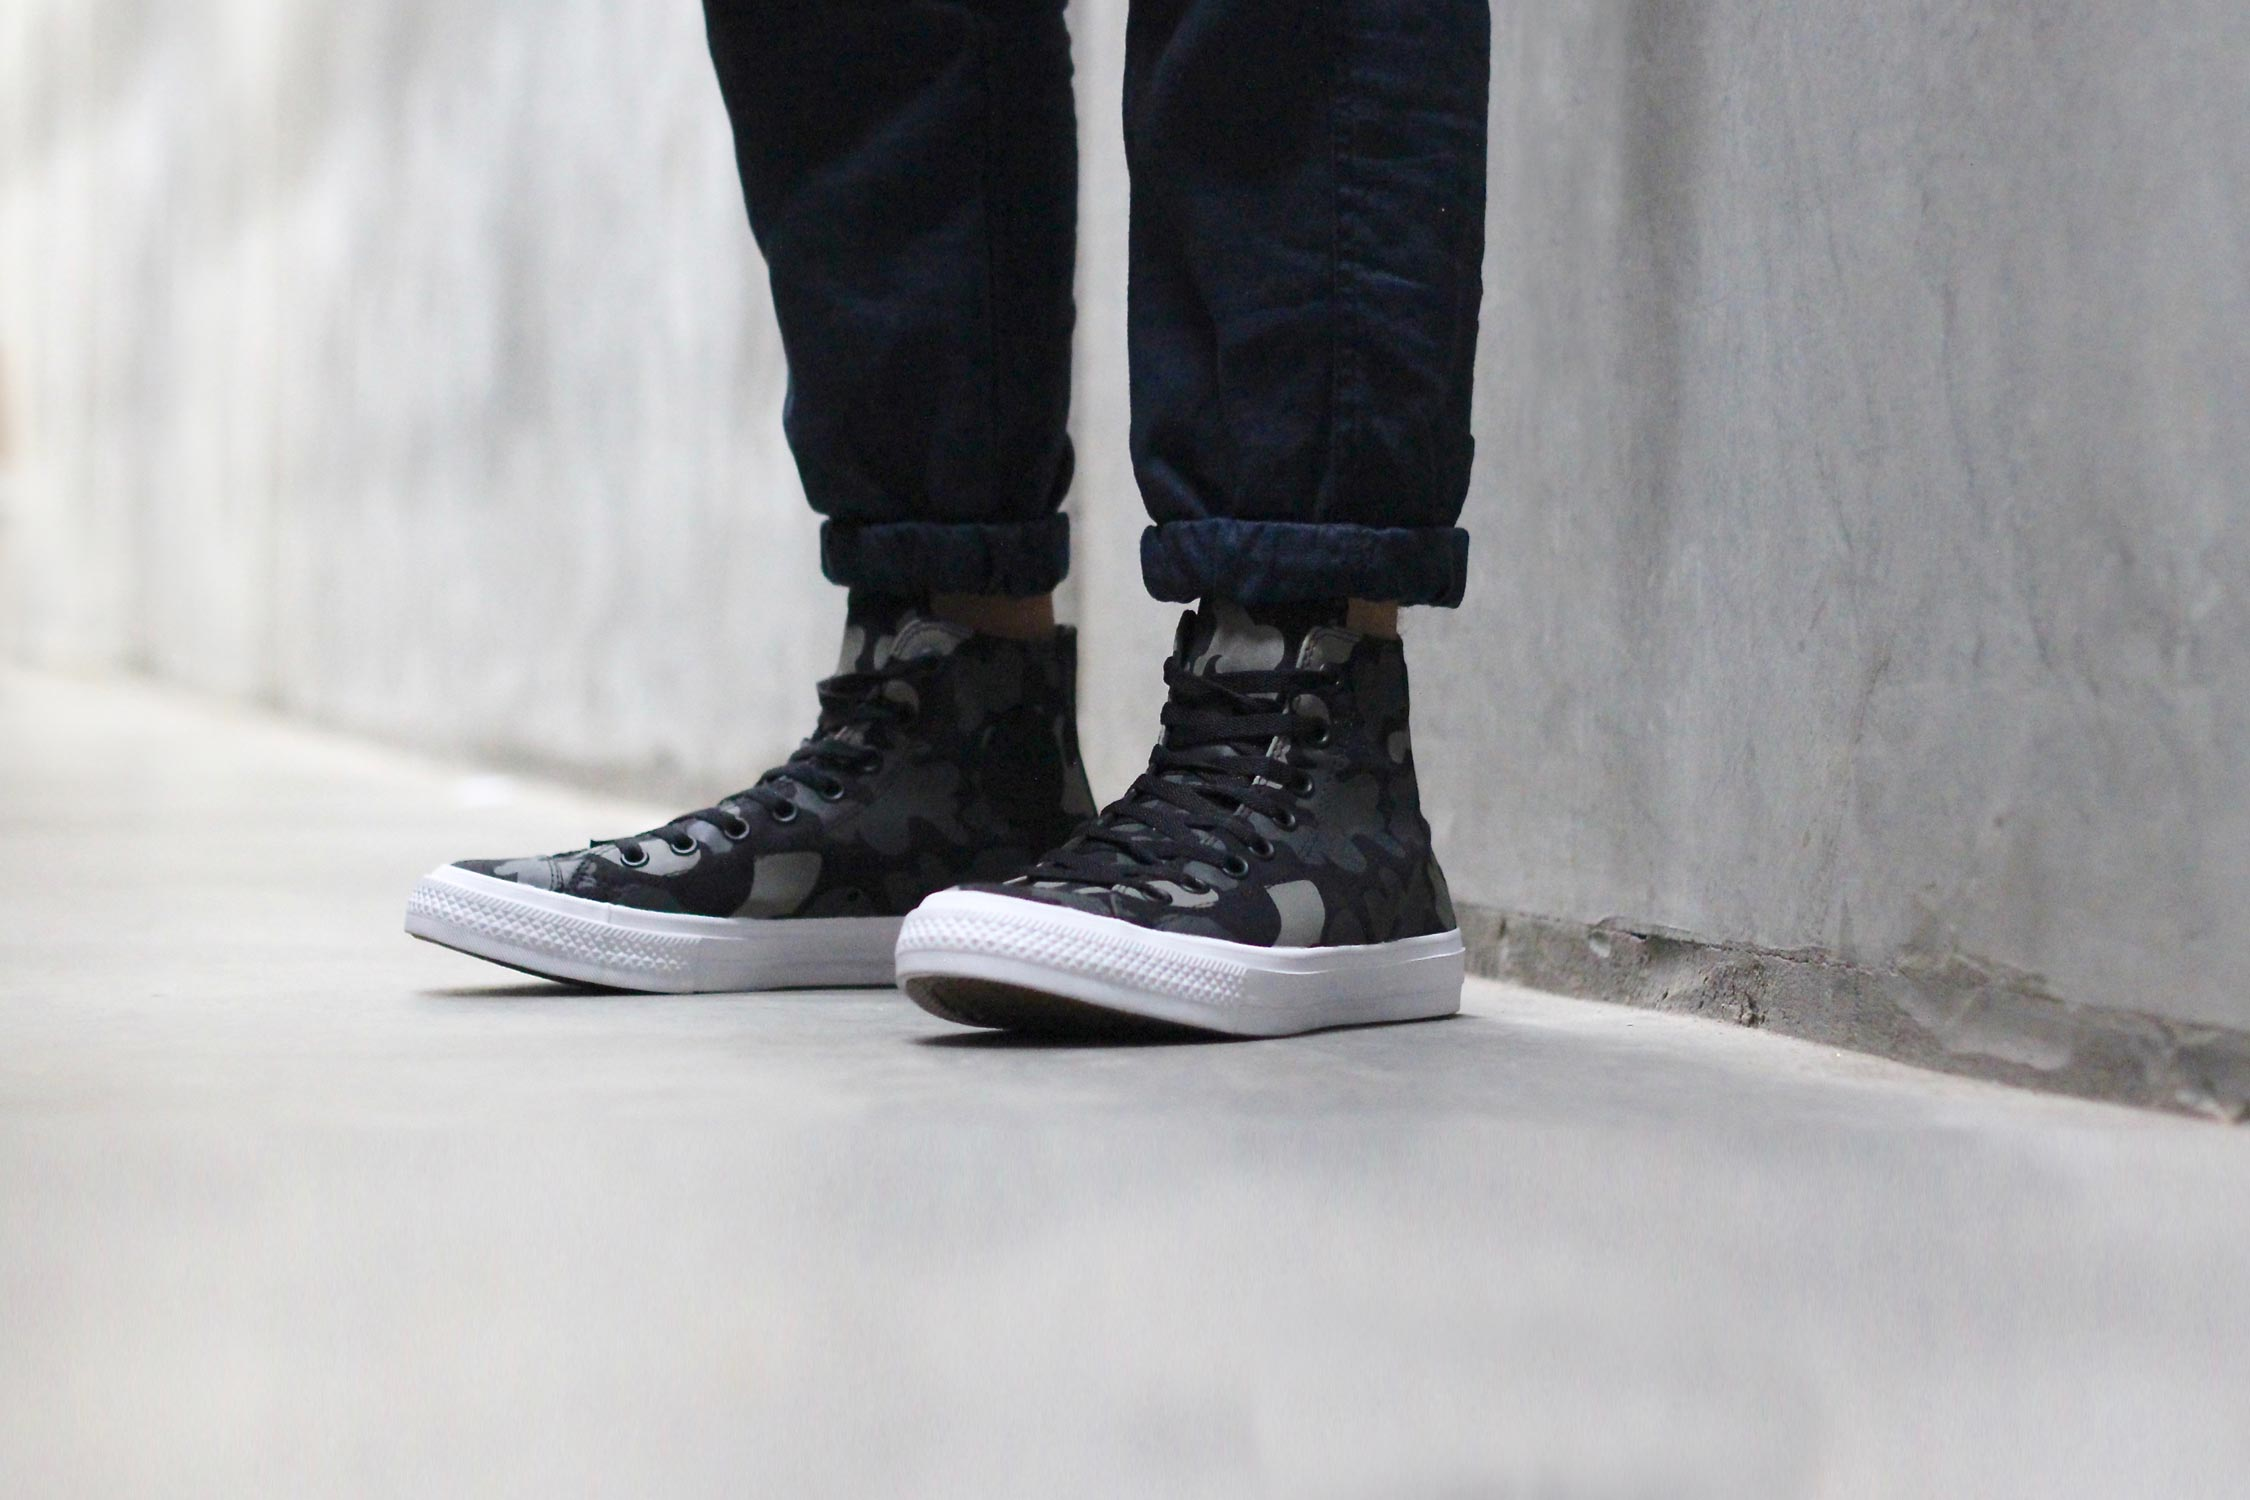 627f5eecf13d Converse Chuck Taylor All Star II Reflective Print Collection - HEY ...